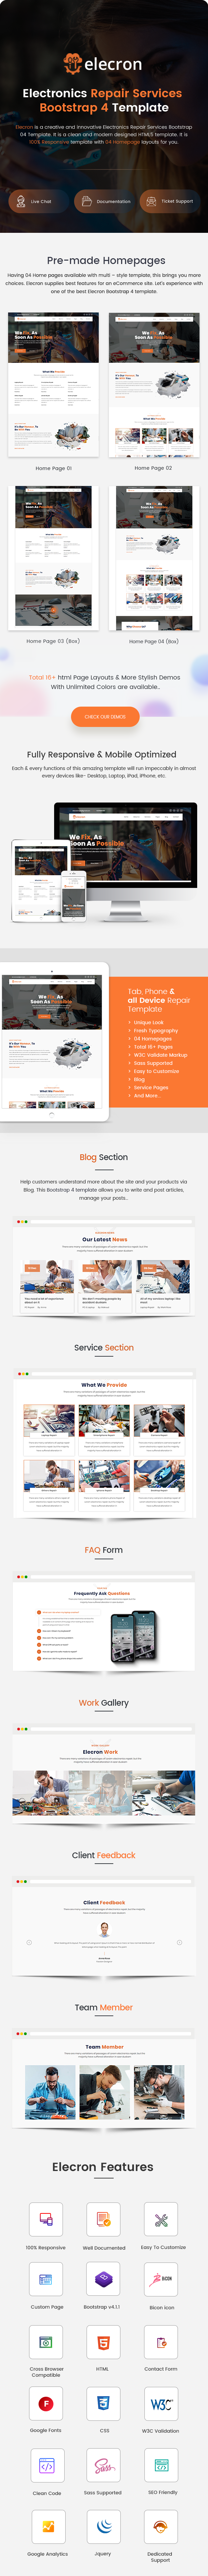 Electronics Repair Services Bootstrap 4 Template